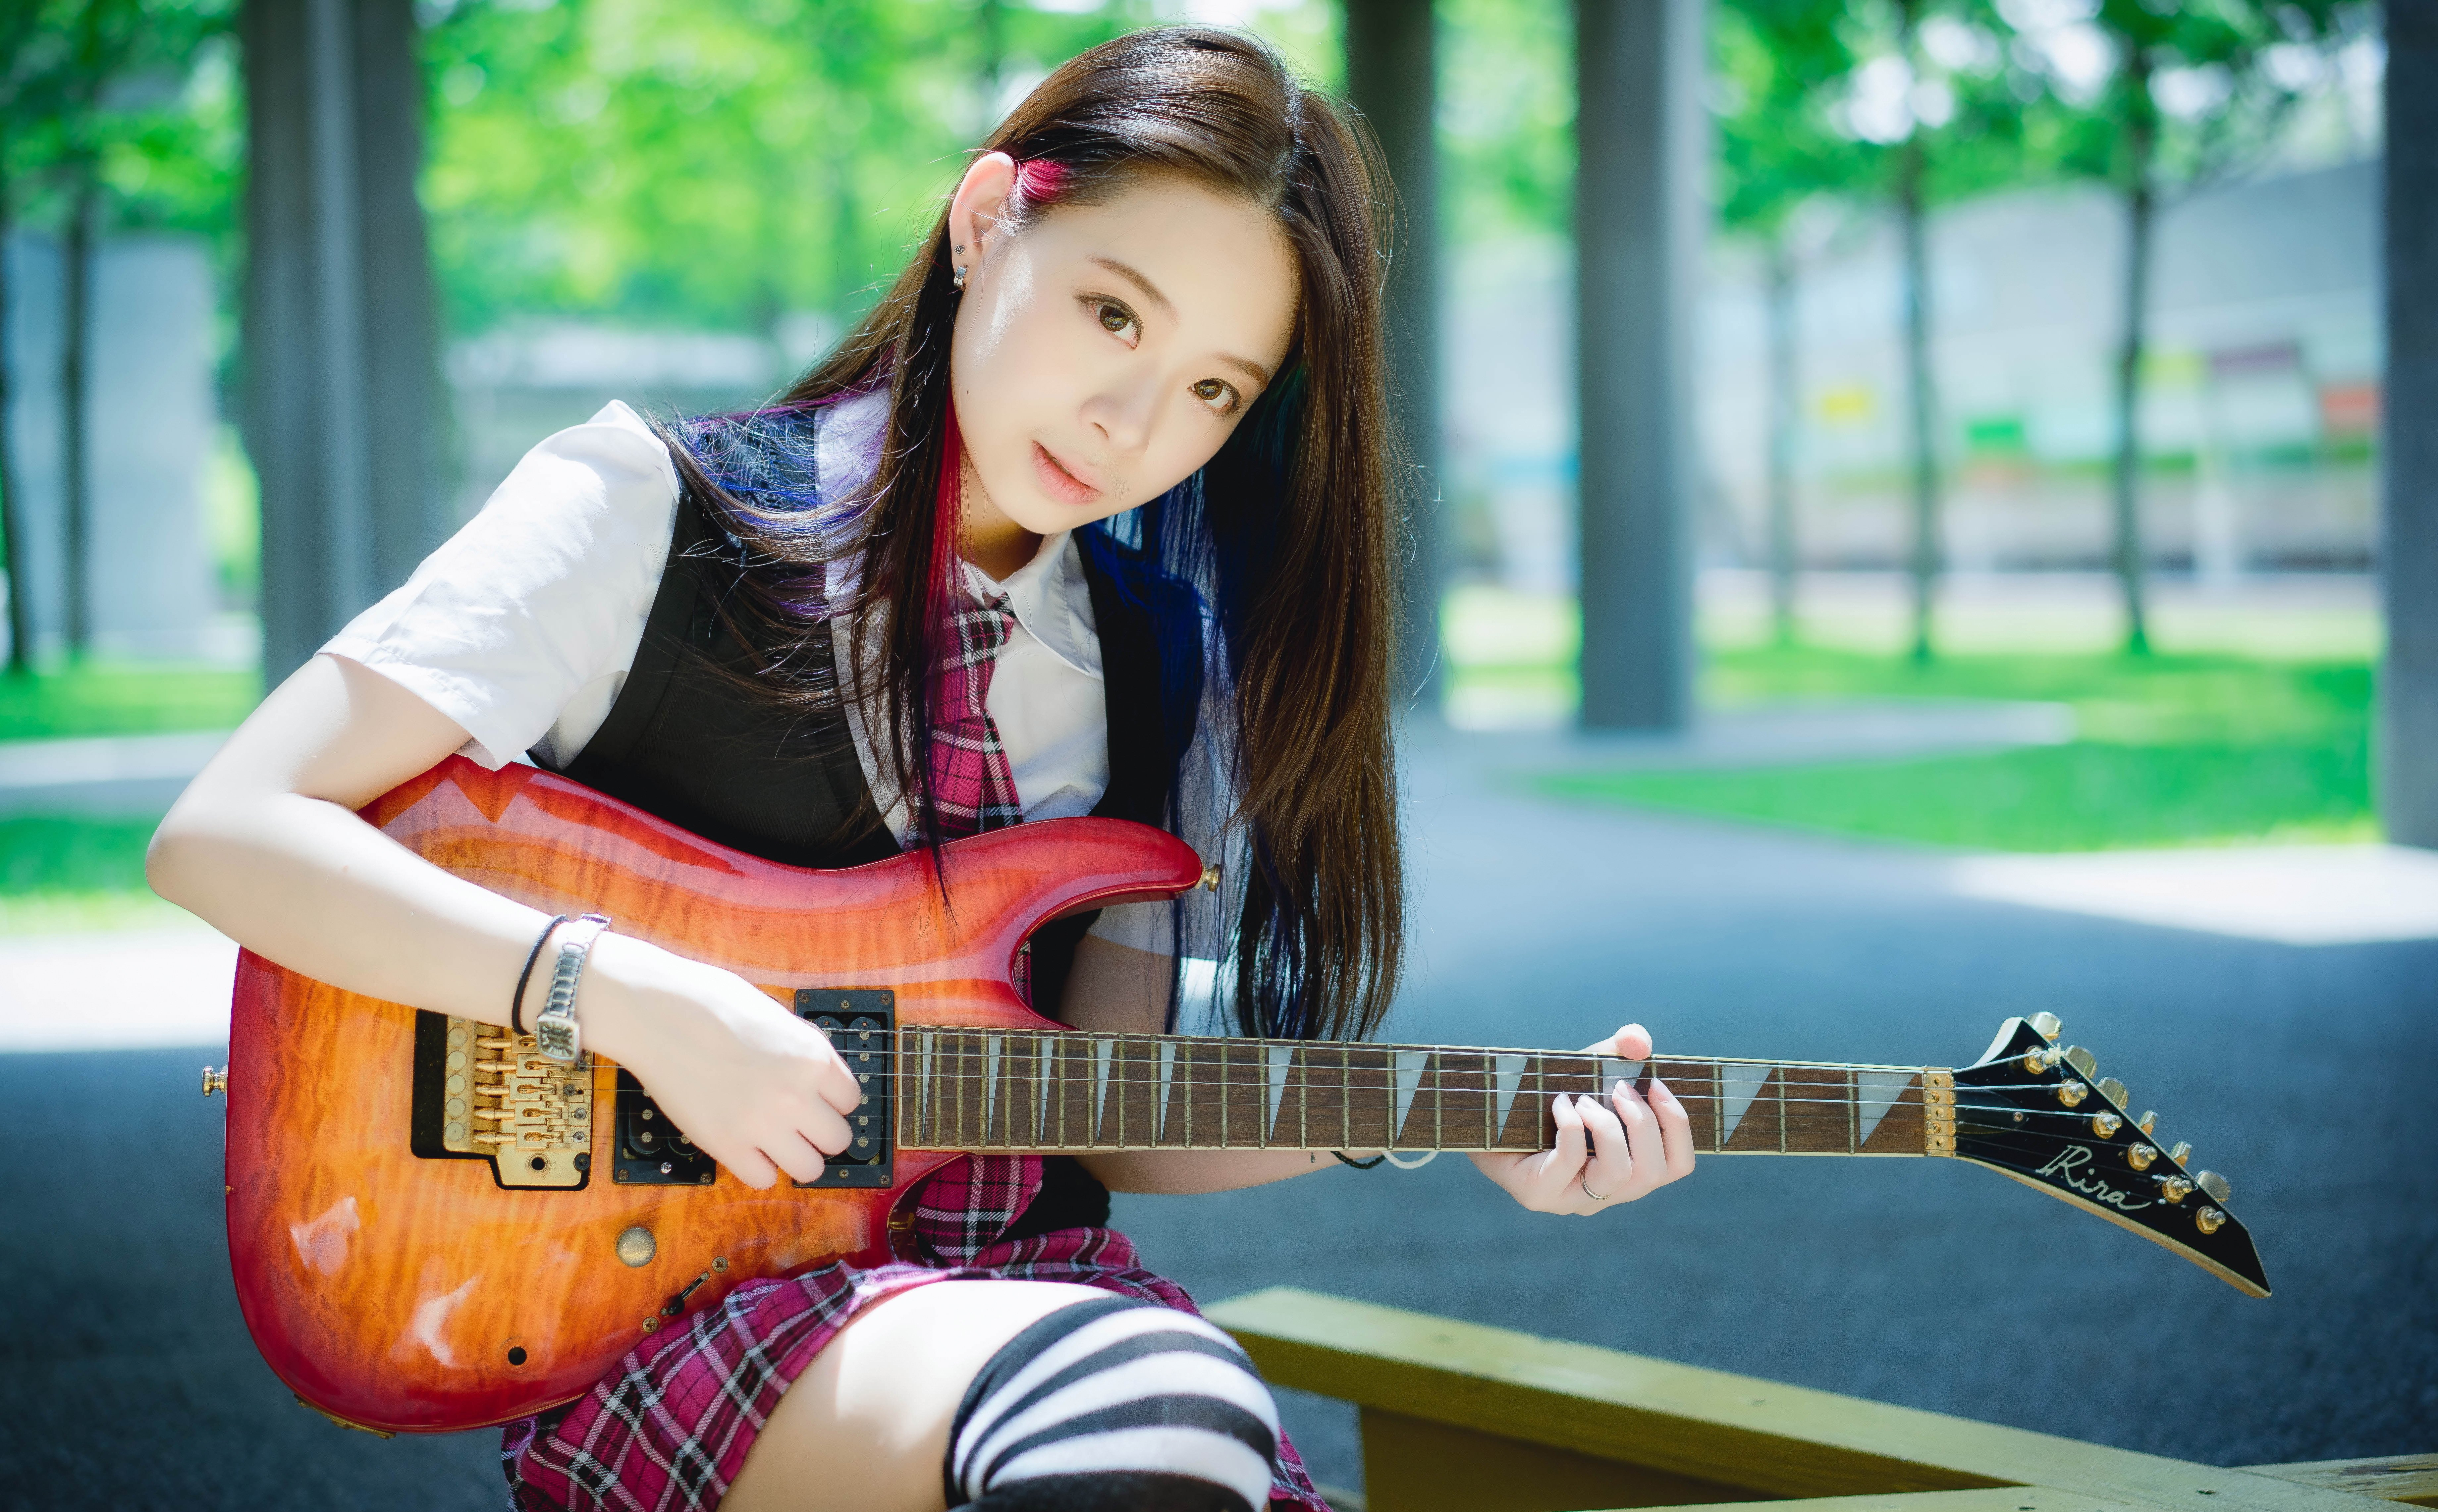 Oriental Asian Girl Girls Woman Women Model Female Guitar Wallpaper 7359x4564 689830 Wallpaperup